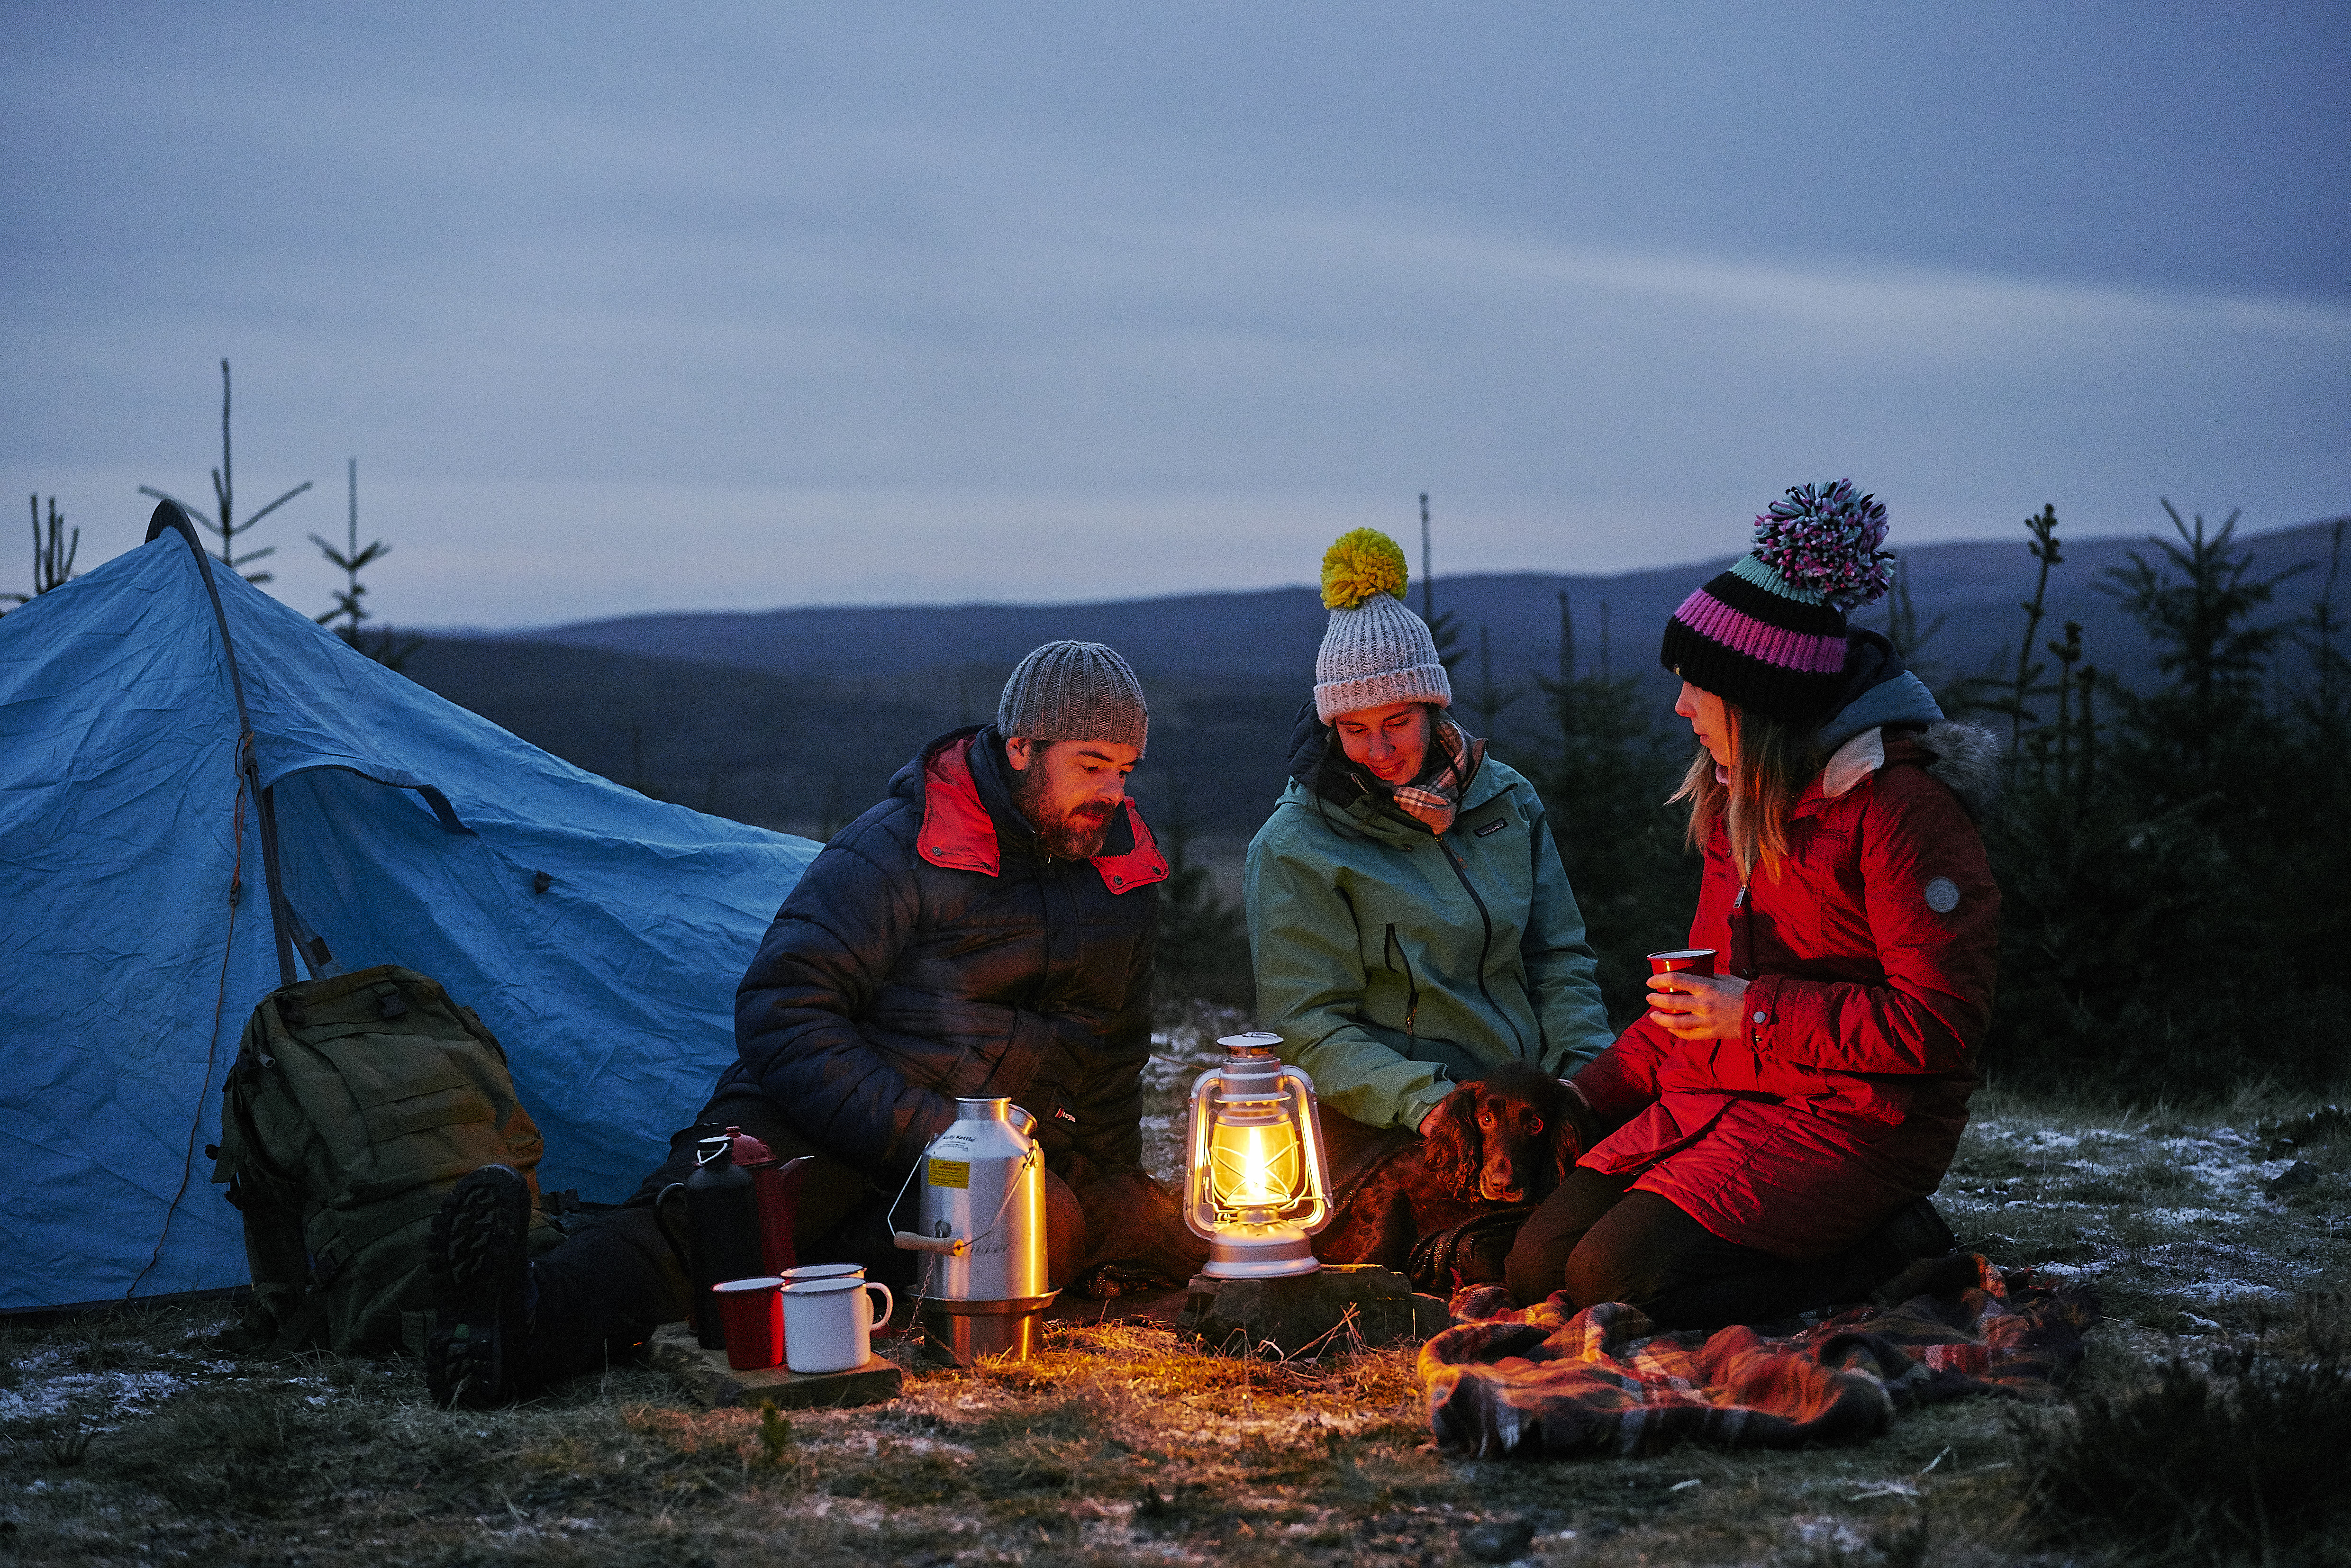 Three friends camping under the night sky